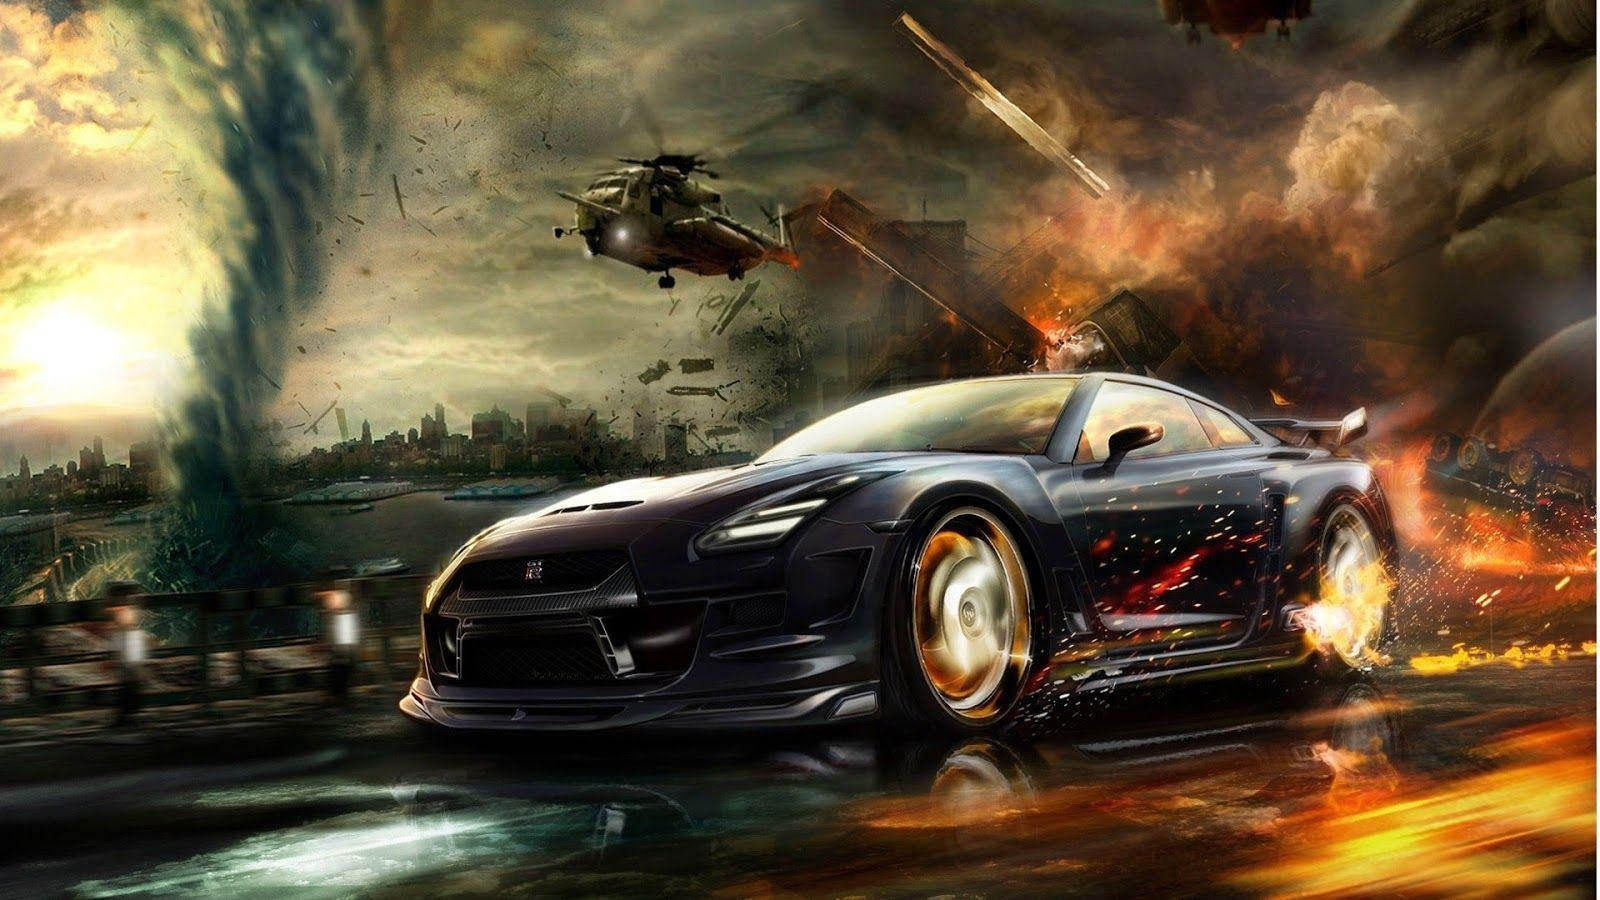 Cool Cars Wallpaper Background